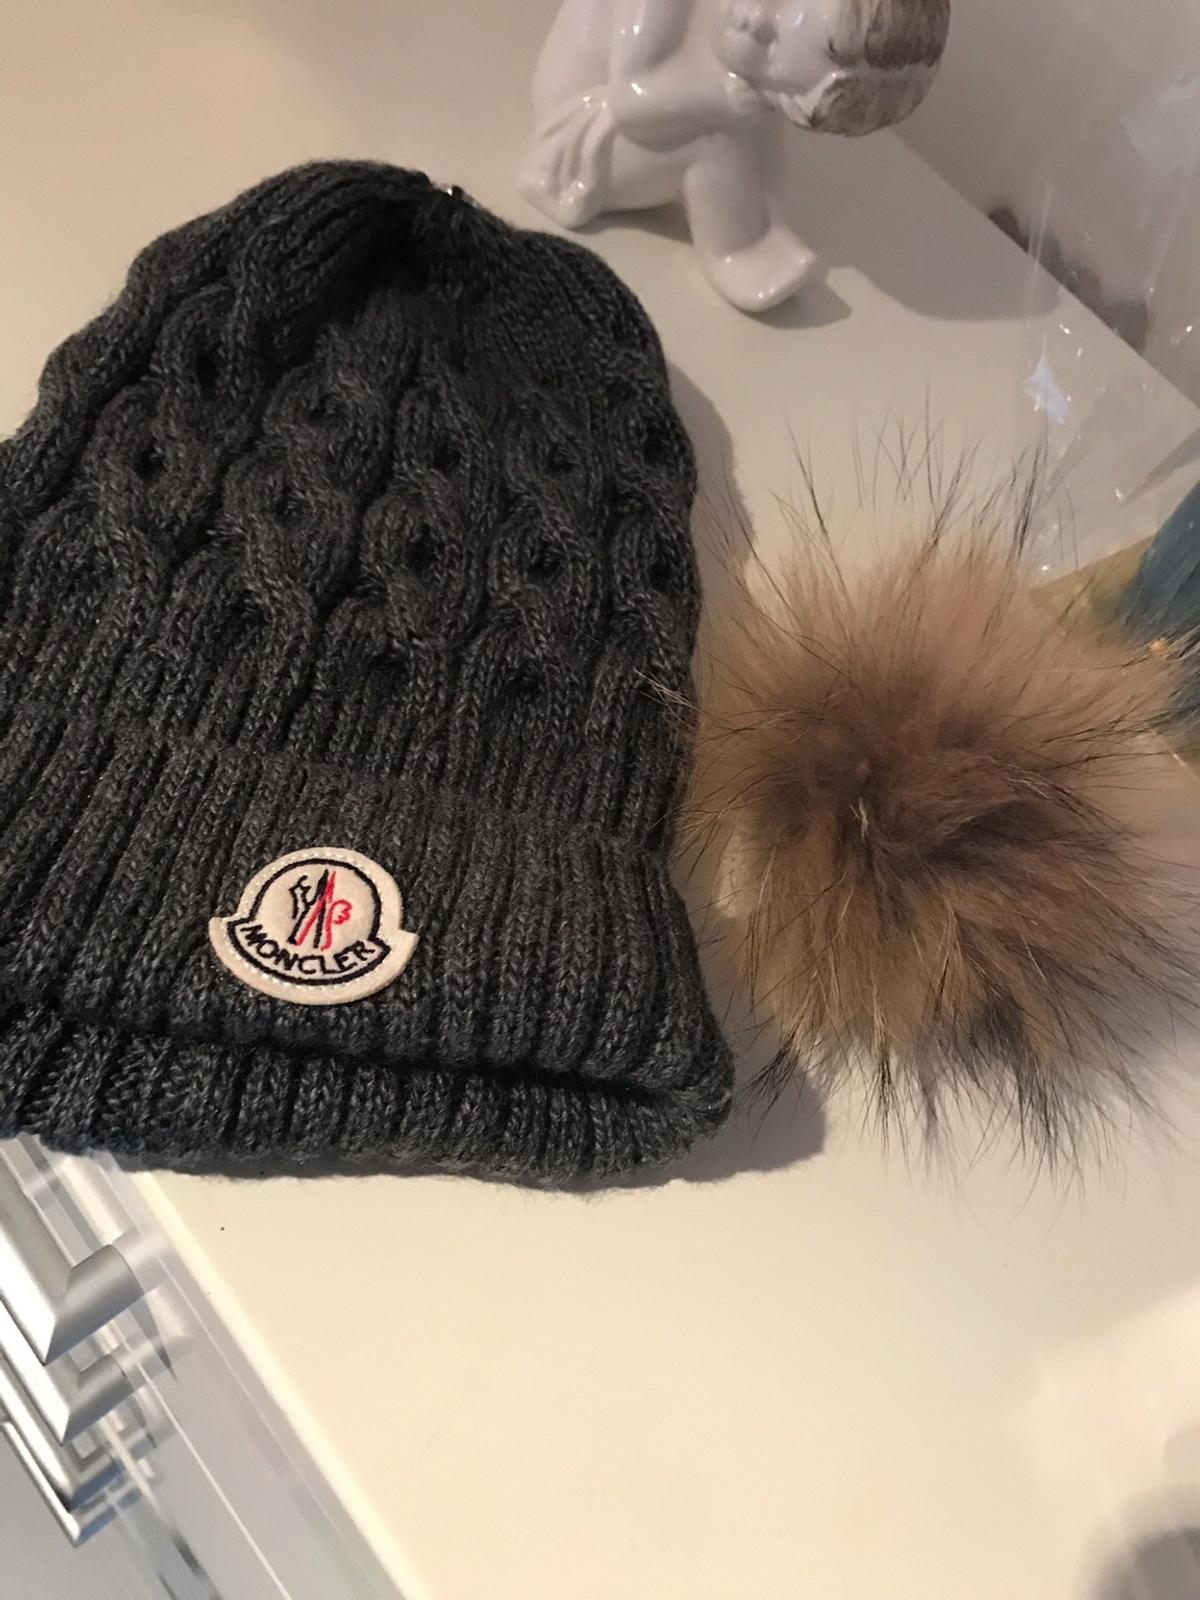 separation shoes d4a3f 61e4a Graue Moncler Mütze Haube in 4052 Ansfelden for €95.00 for ...